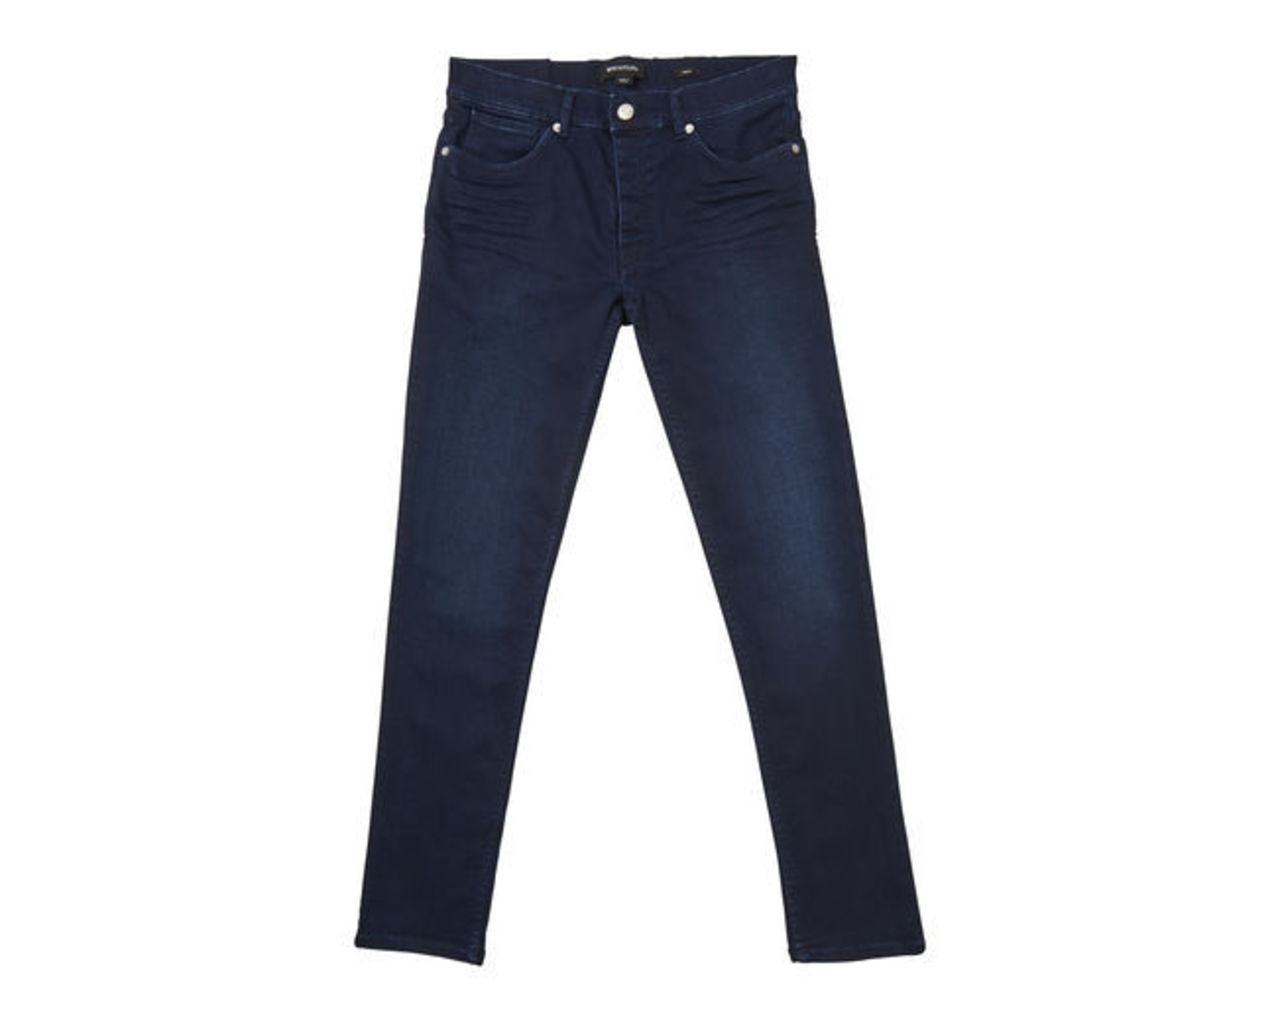 Blue/Blue Slim Fit Jeans